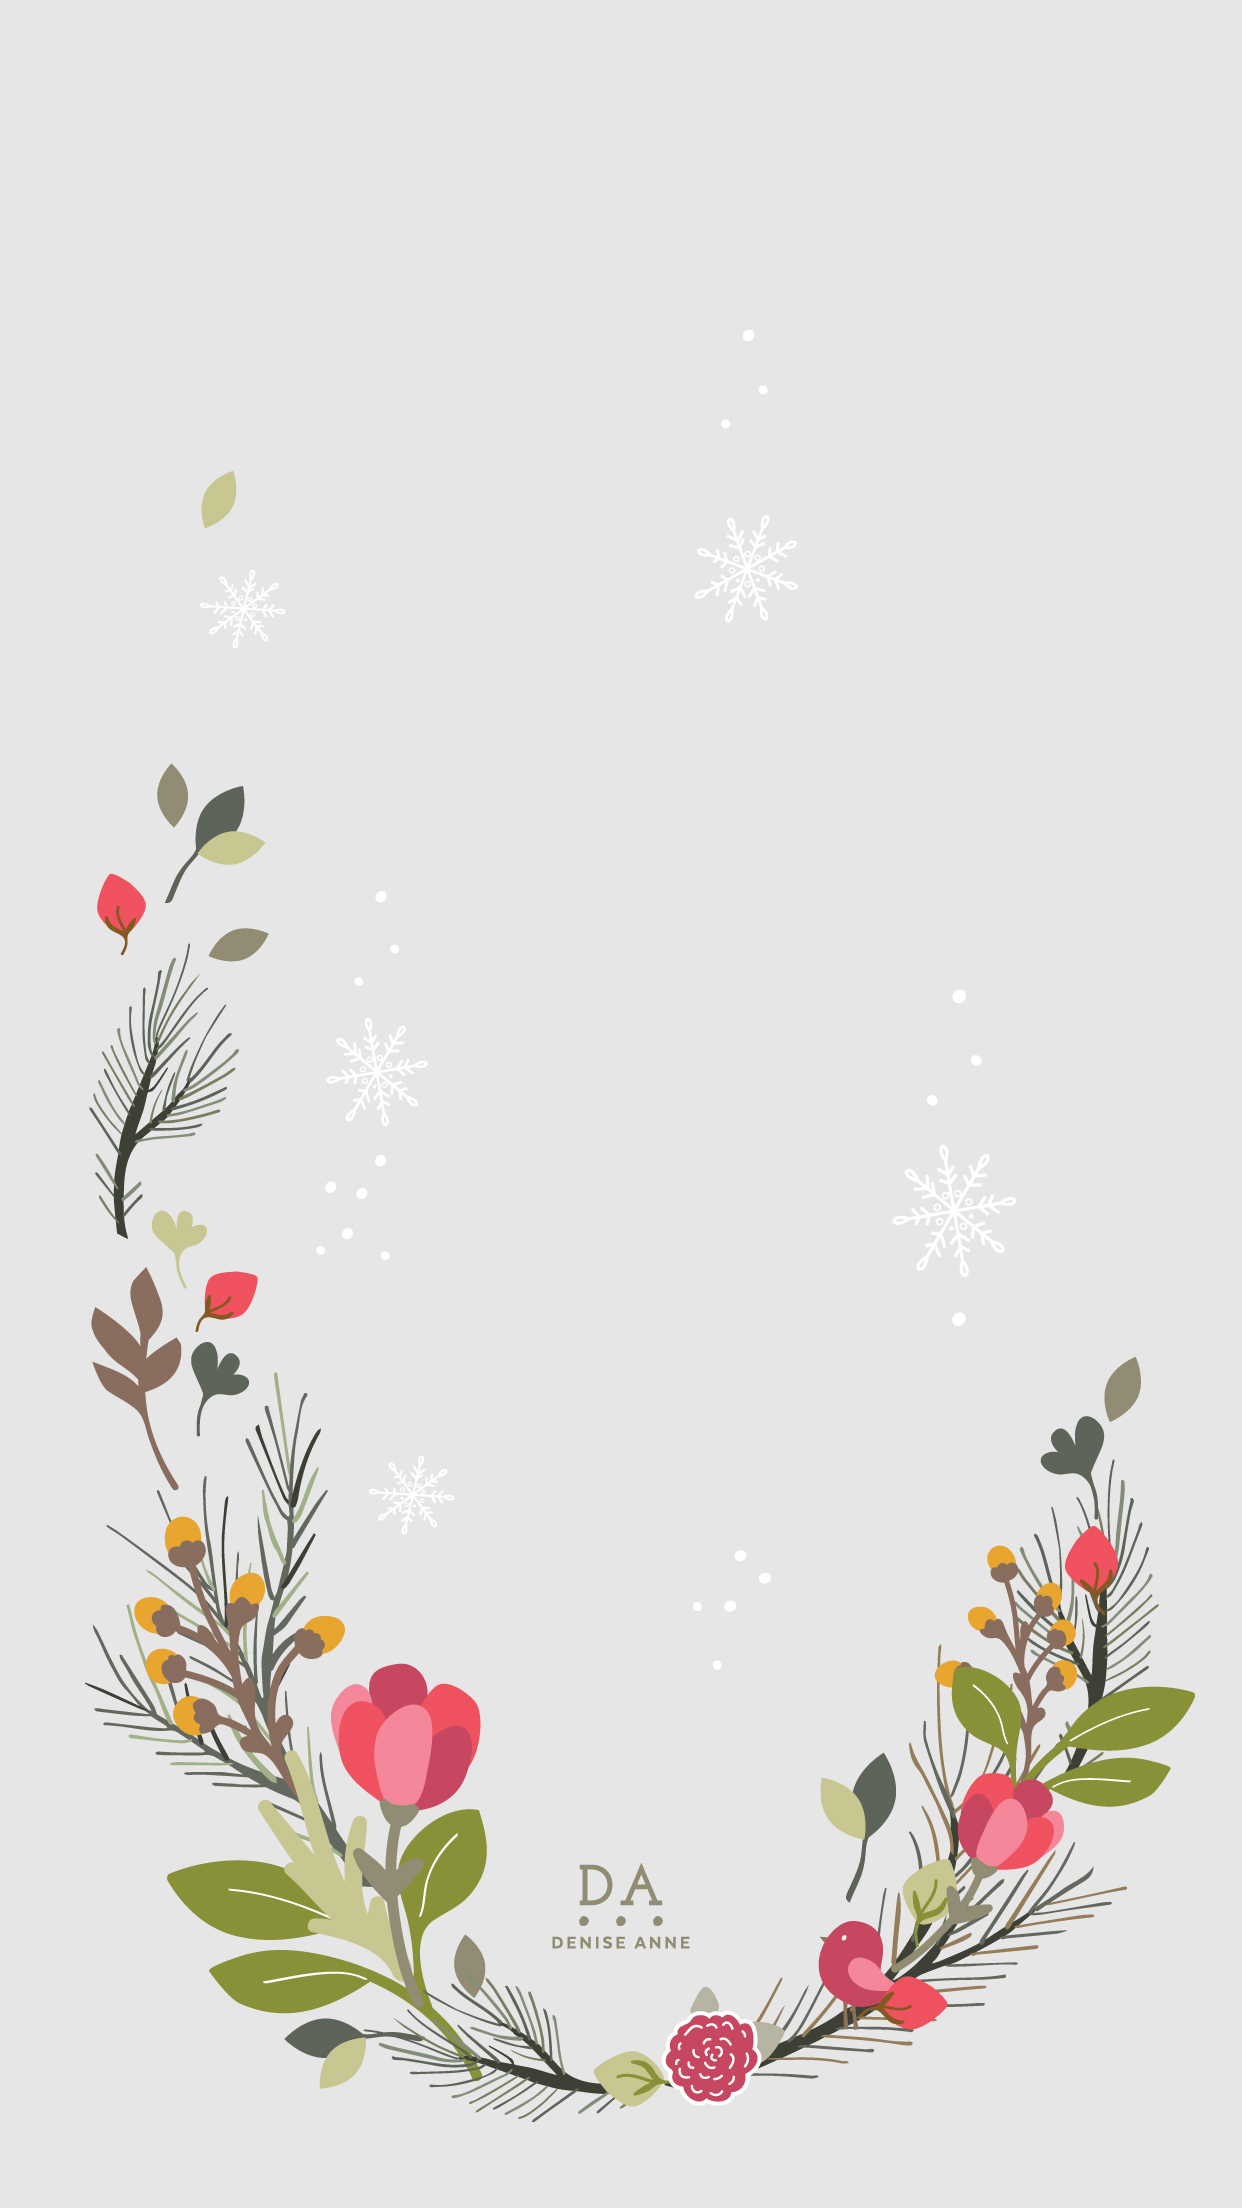 Christmas Flowers - Click for download links